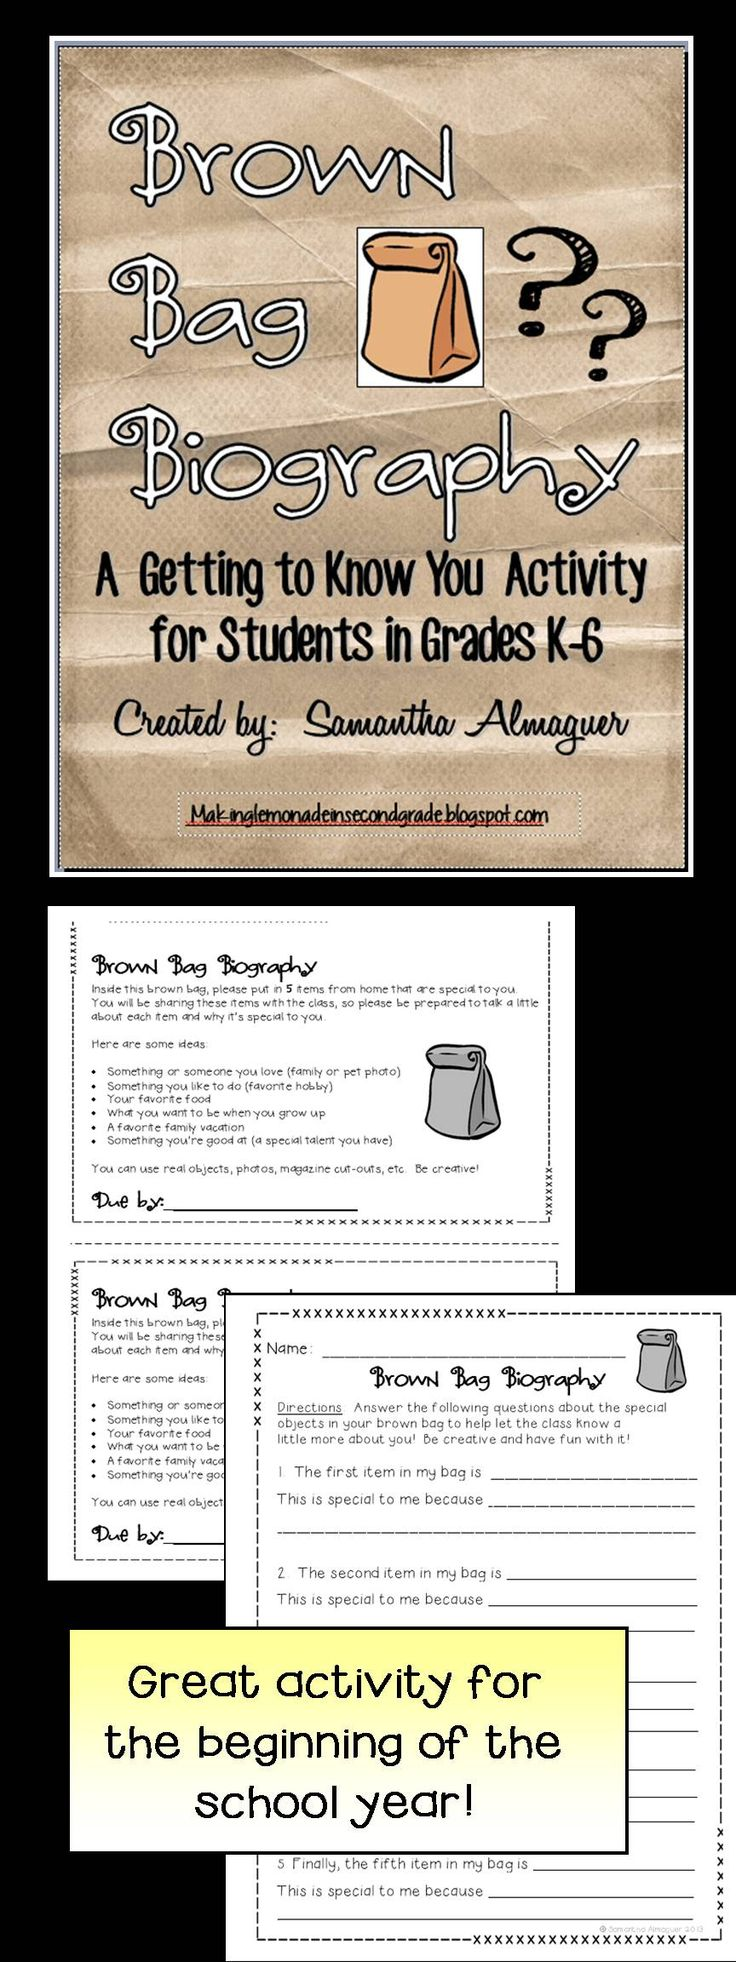 FREEBIE!  This is a great little activity for the first few weeks of school!  Copy, cut, and staple to a brown bag for your students to take home.  Students fill the bag with five items that help to describe who they are (sample ideas included).  Additional page included for students to write about each item and why it's special to them.  Easy and fun getting to know you activity!